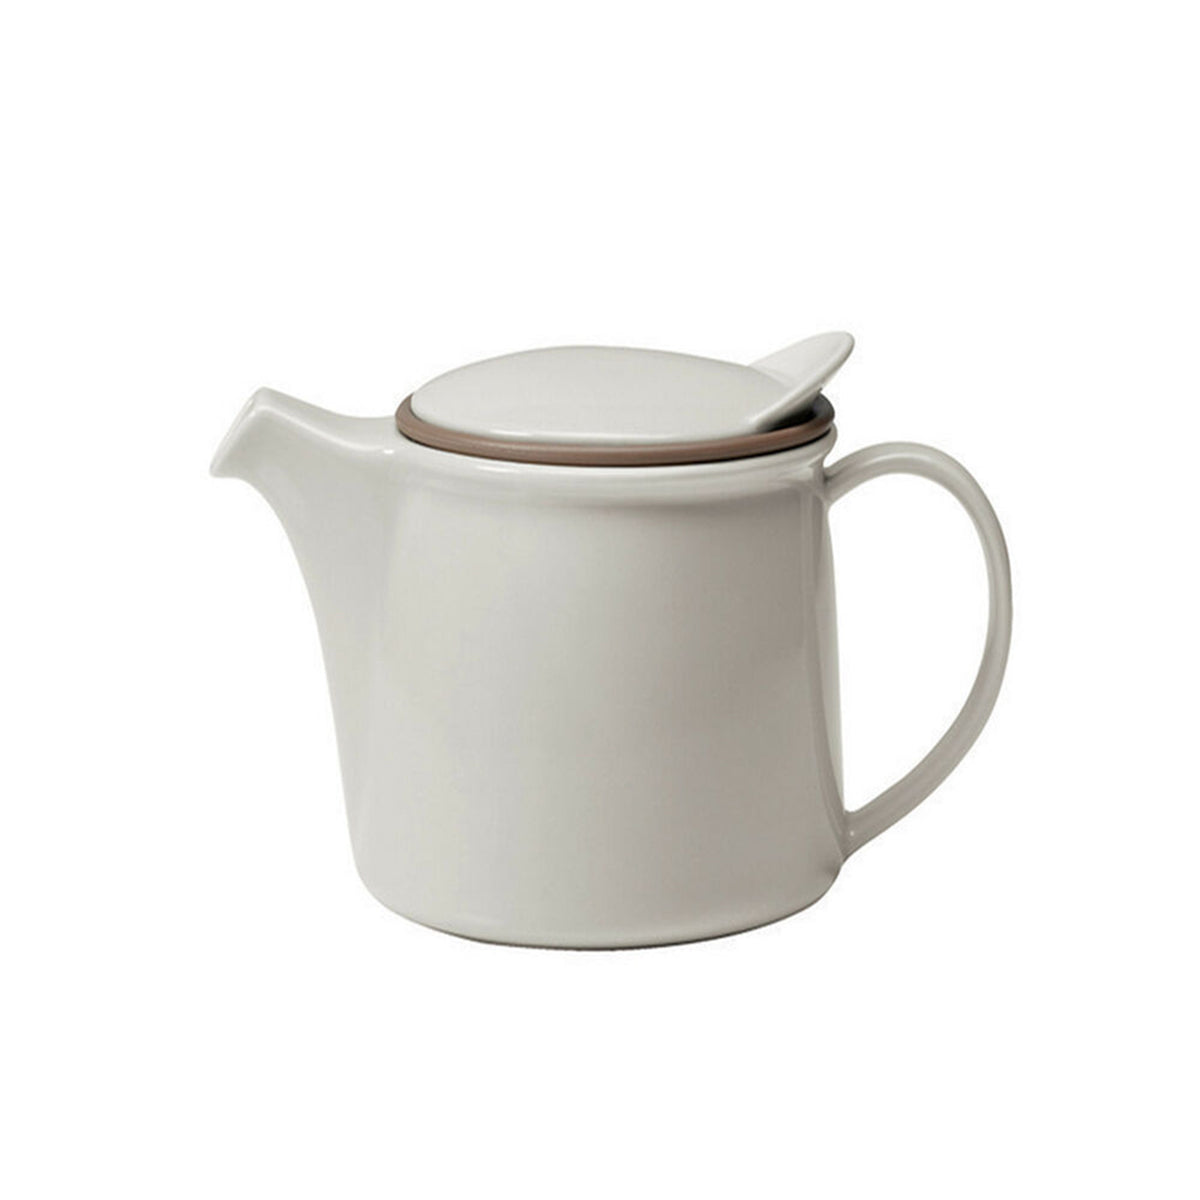 Brim Teapot White 750ml